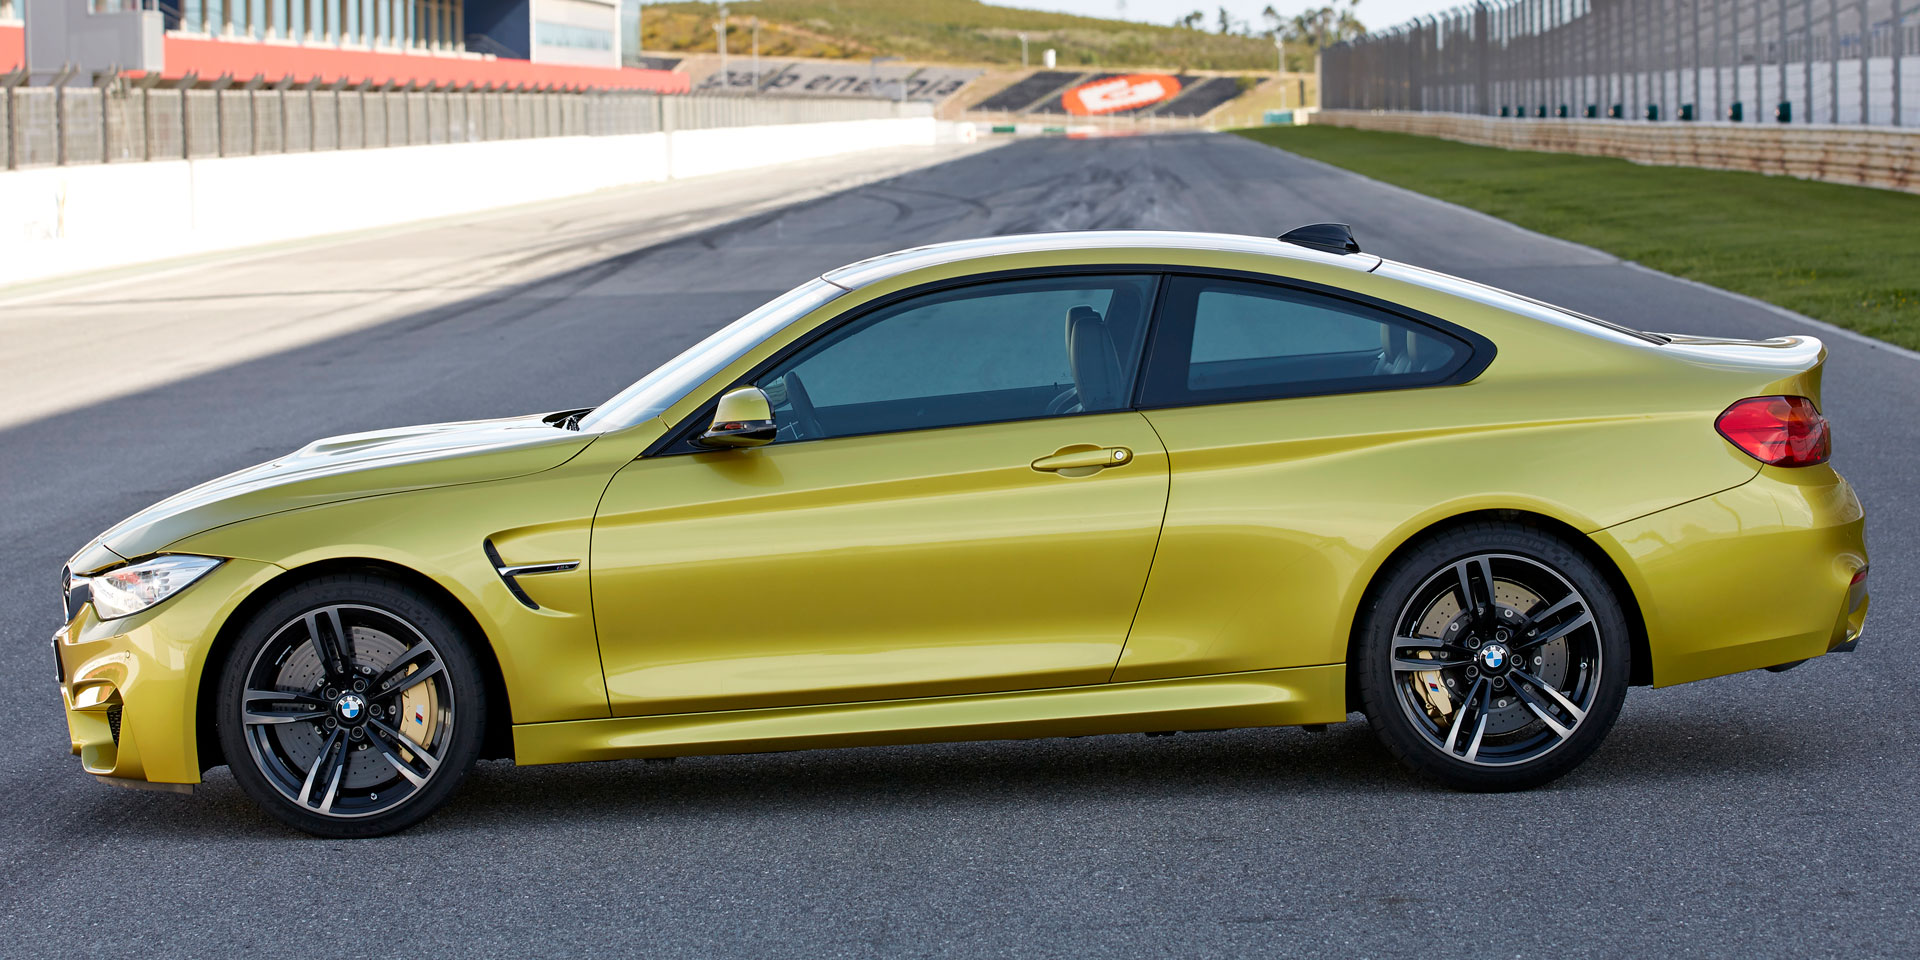 2015 BMW M4 COUPE: BMWu0027s All New M4 Coupe Arrived At Dealerships In The  Summer Of 2014 As 2015 Models. This Exciting High Performance BMW Sports  Car Is A ...